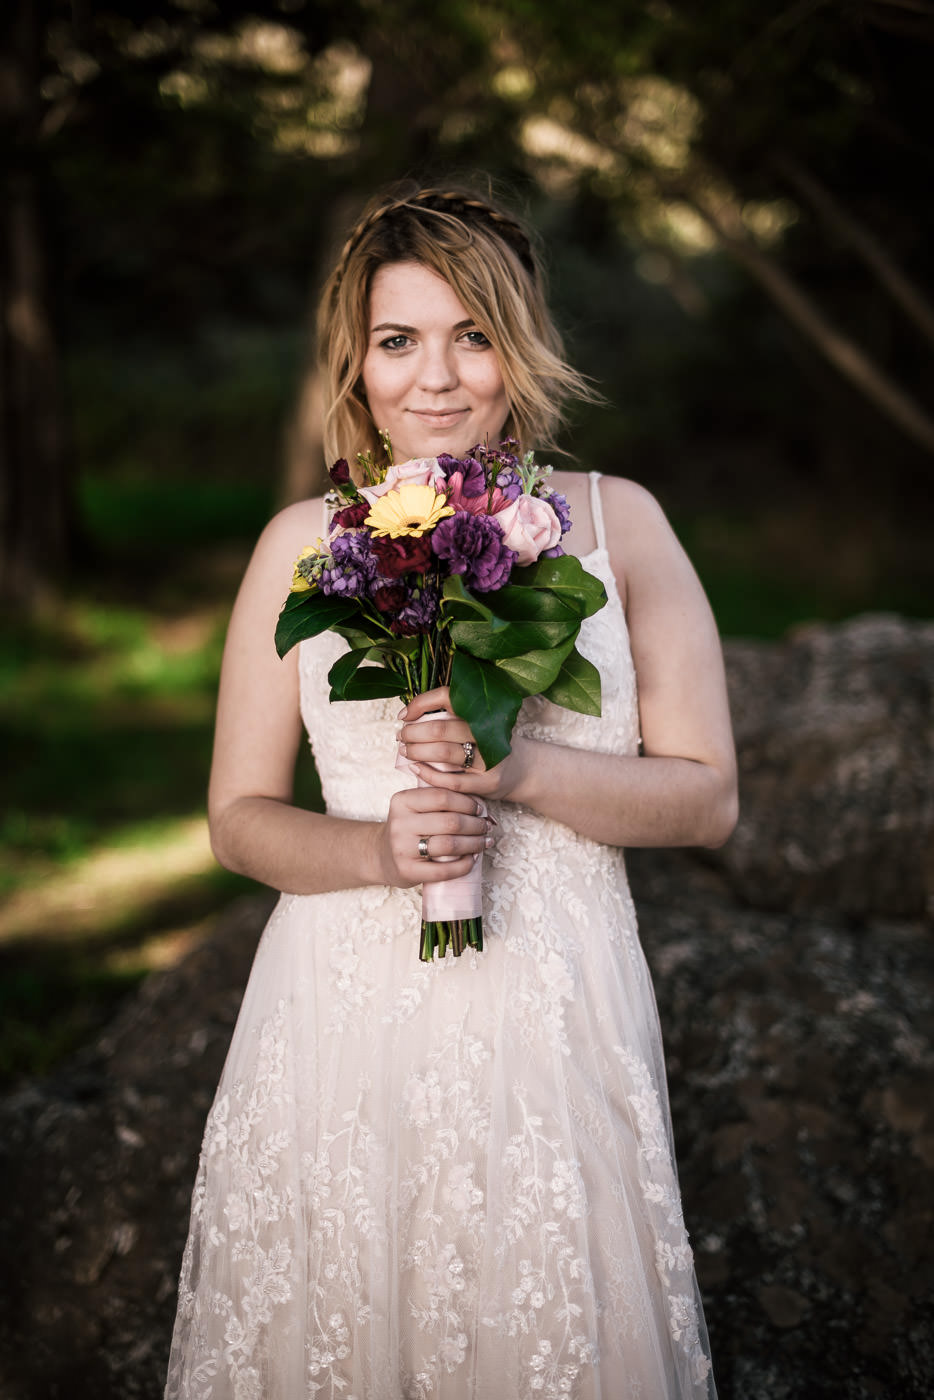 Beautiful bride poses with her bouquet and smiles at the camera in Big Sur.